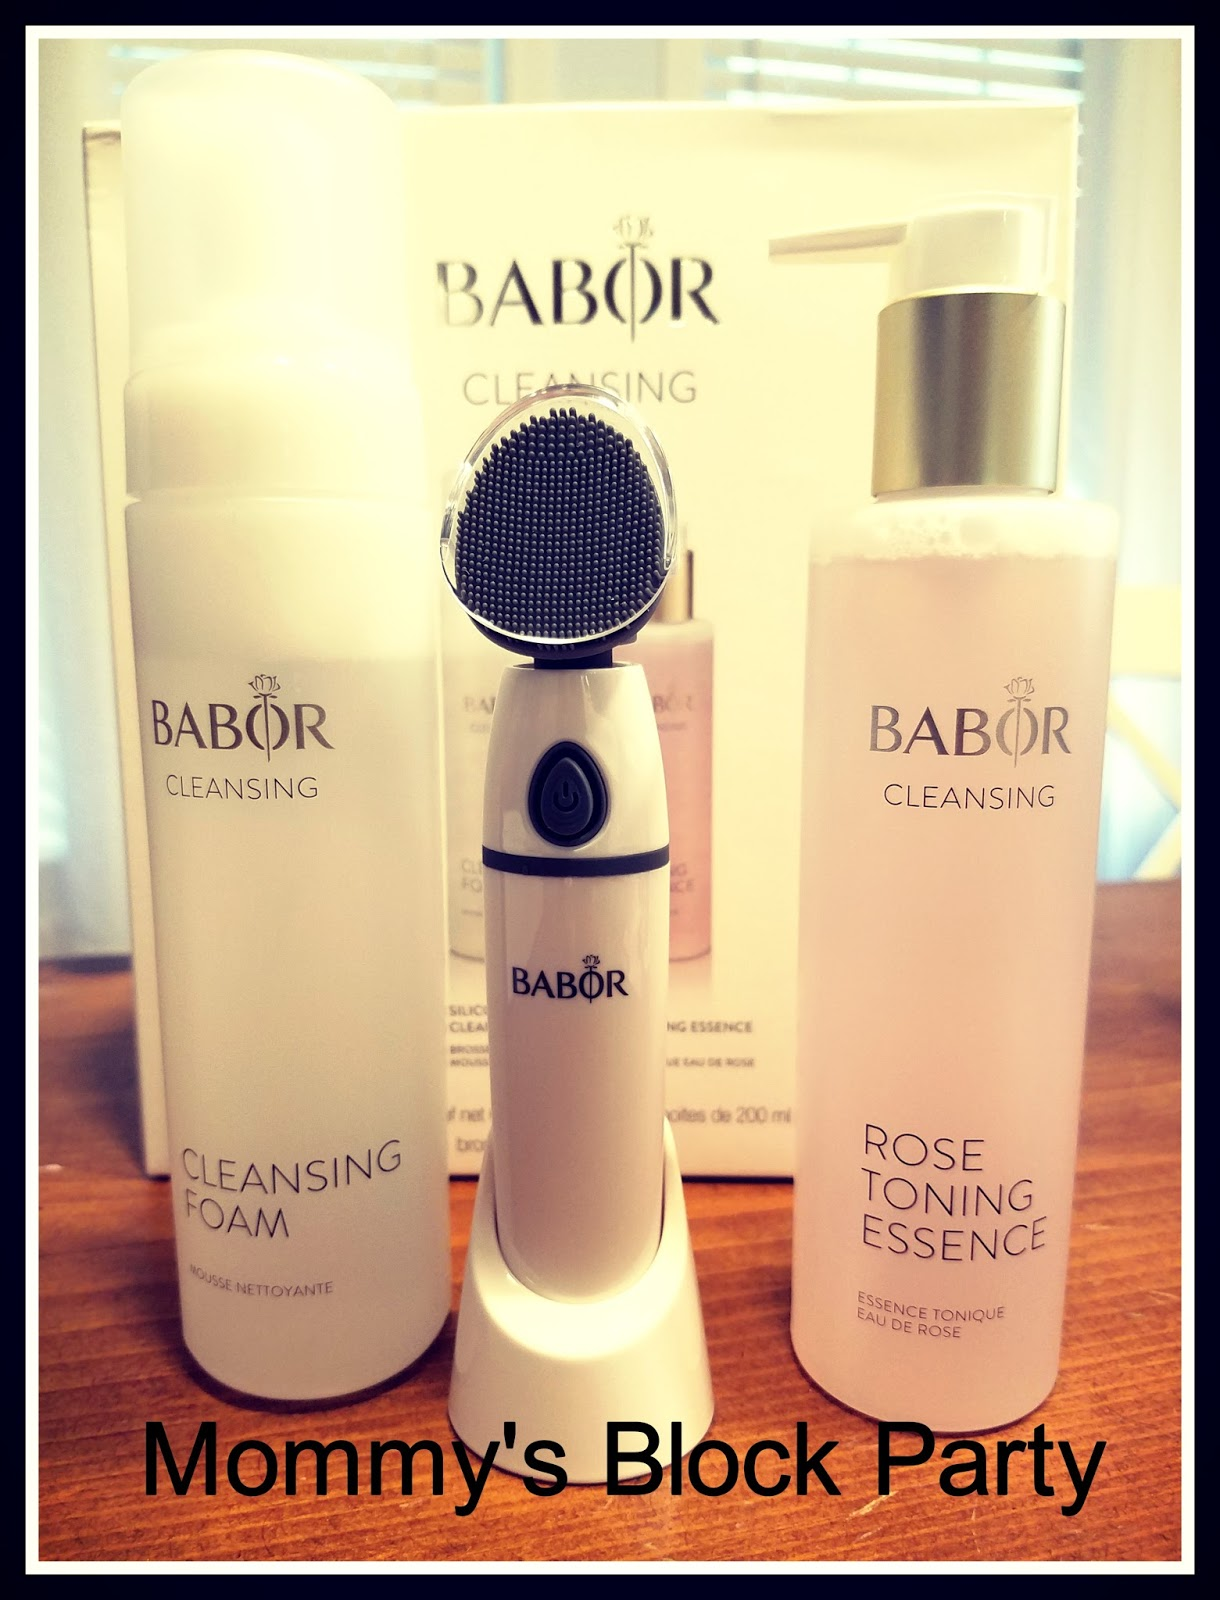 Cleansing Foam by Babor #22